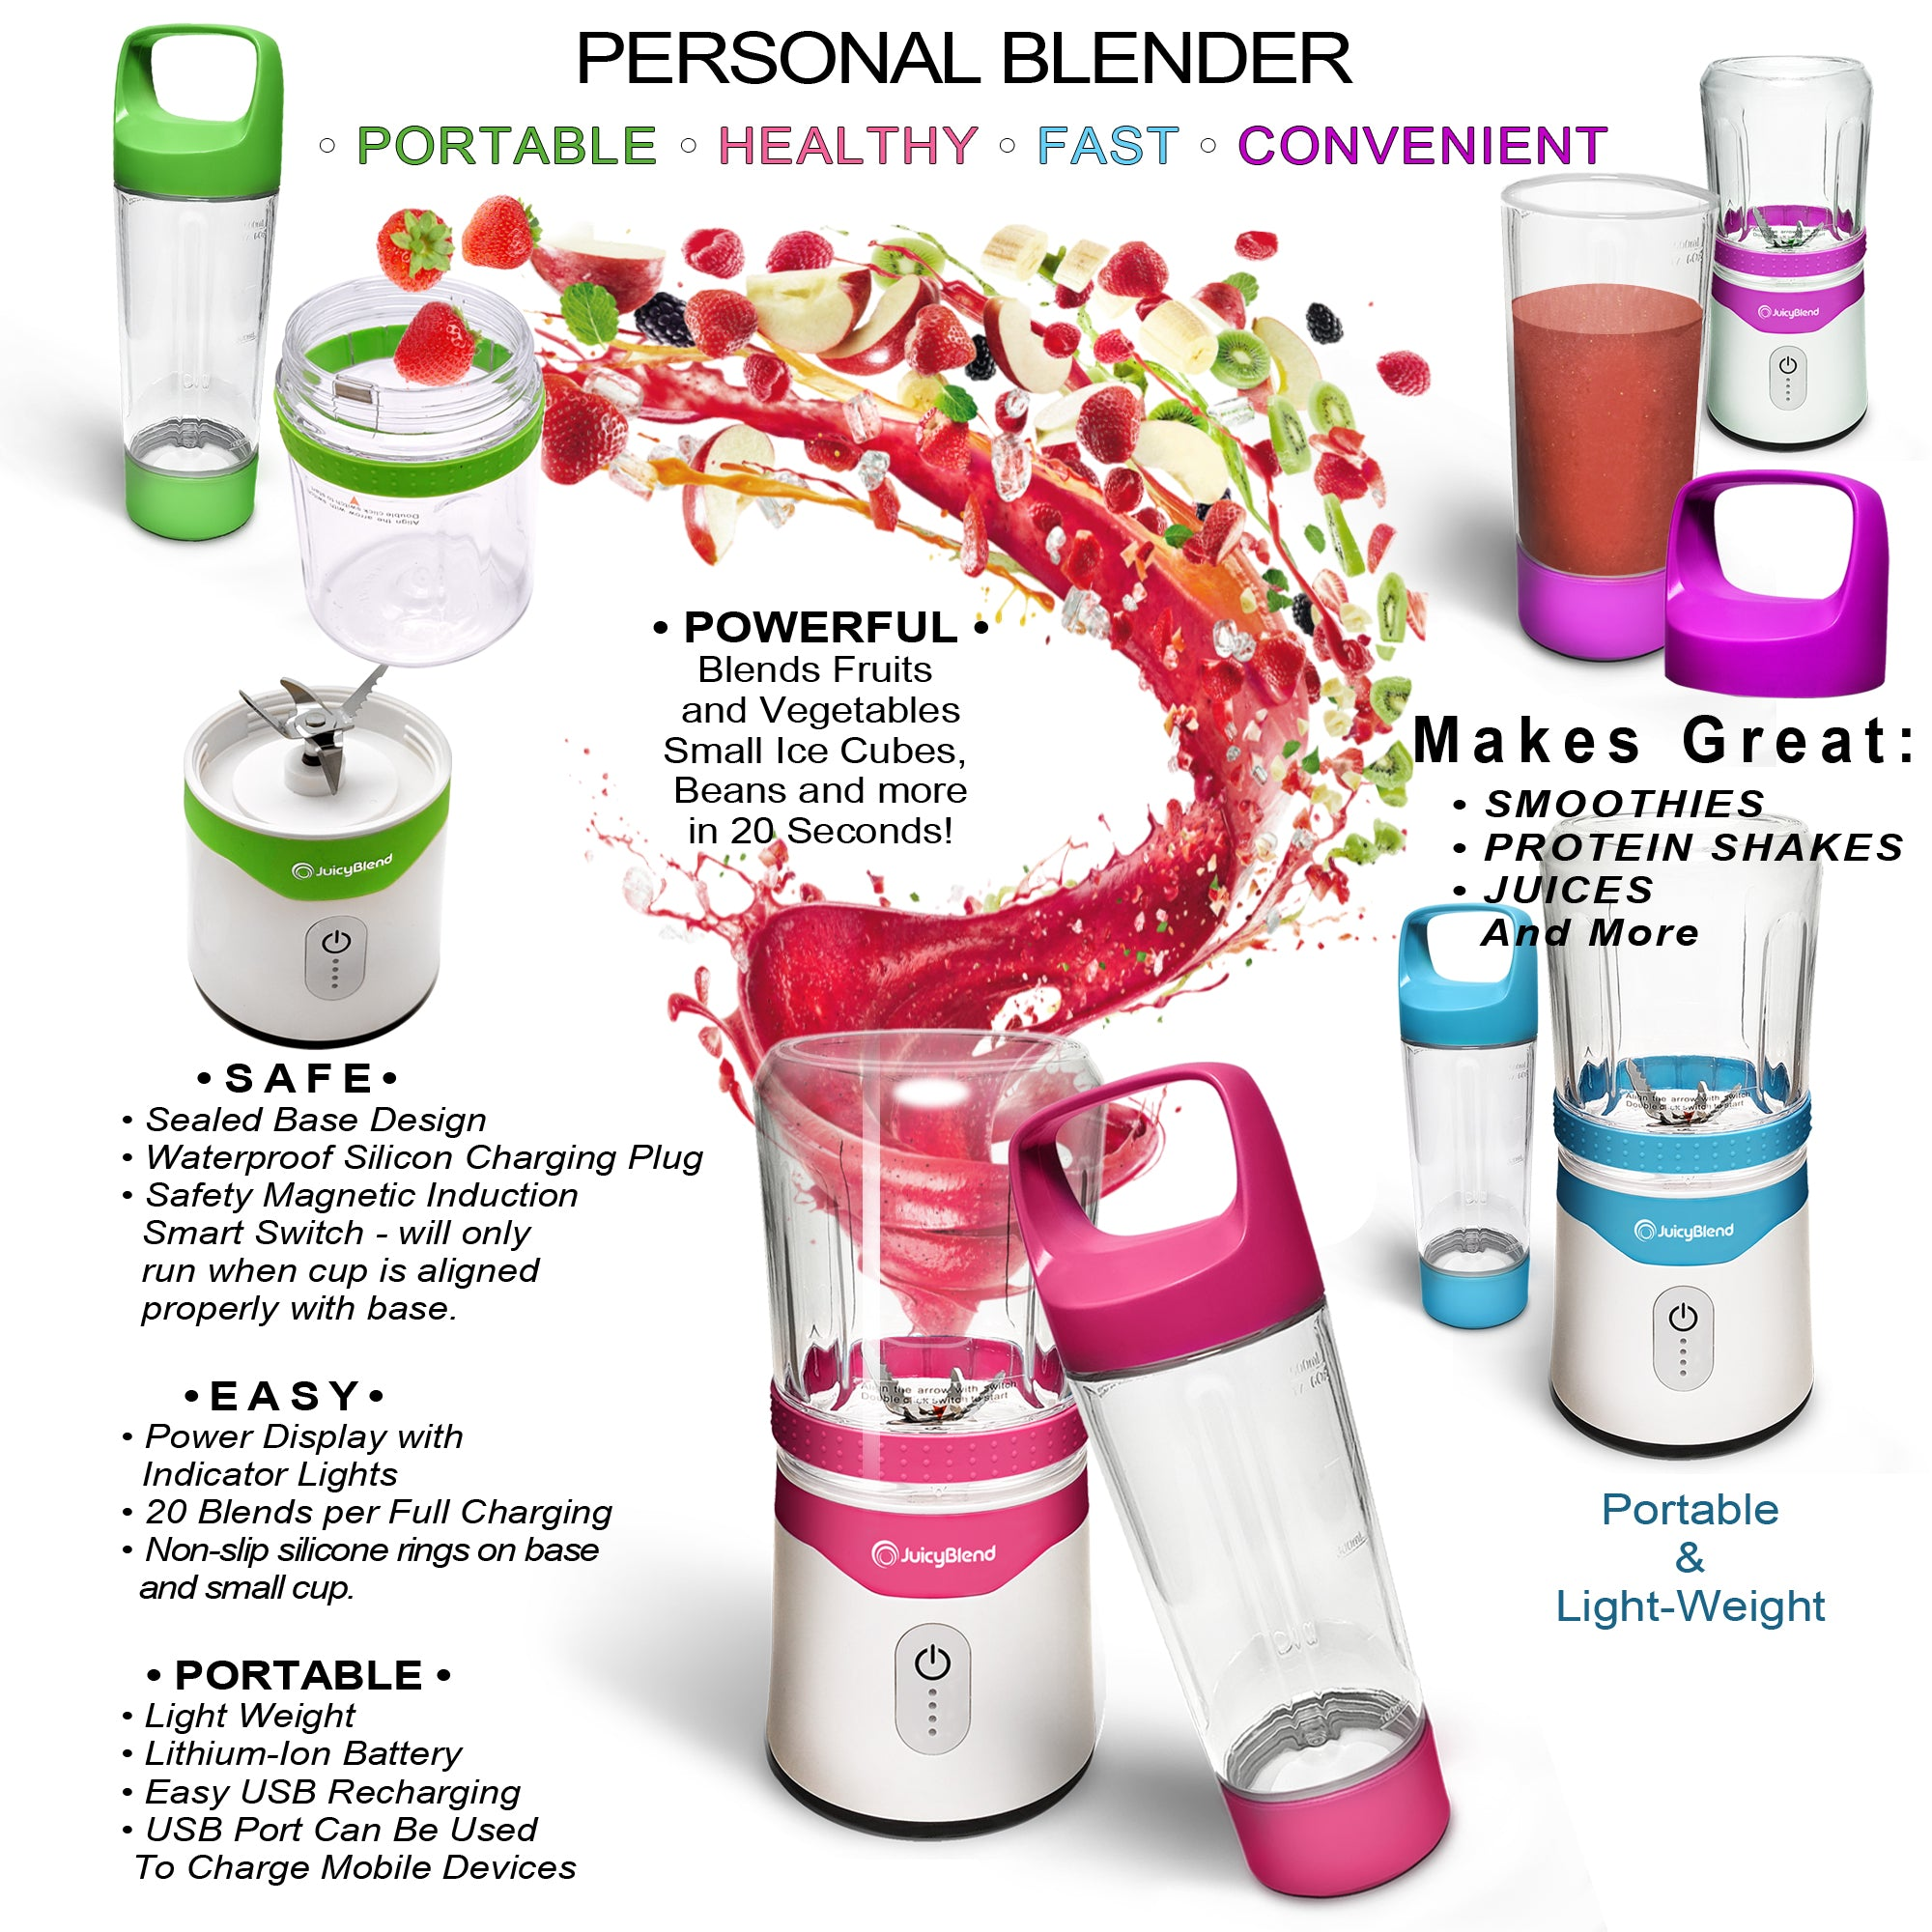 JuicyBlend portable blender benefits and features. Portable, healthy, fast, convenient, powerful, safe, easy. Makes great smoothies, protein shakes, juices and more. Green, purple, pink, and light blue portable blenders with cups and bases shown.